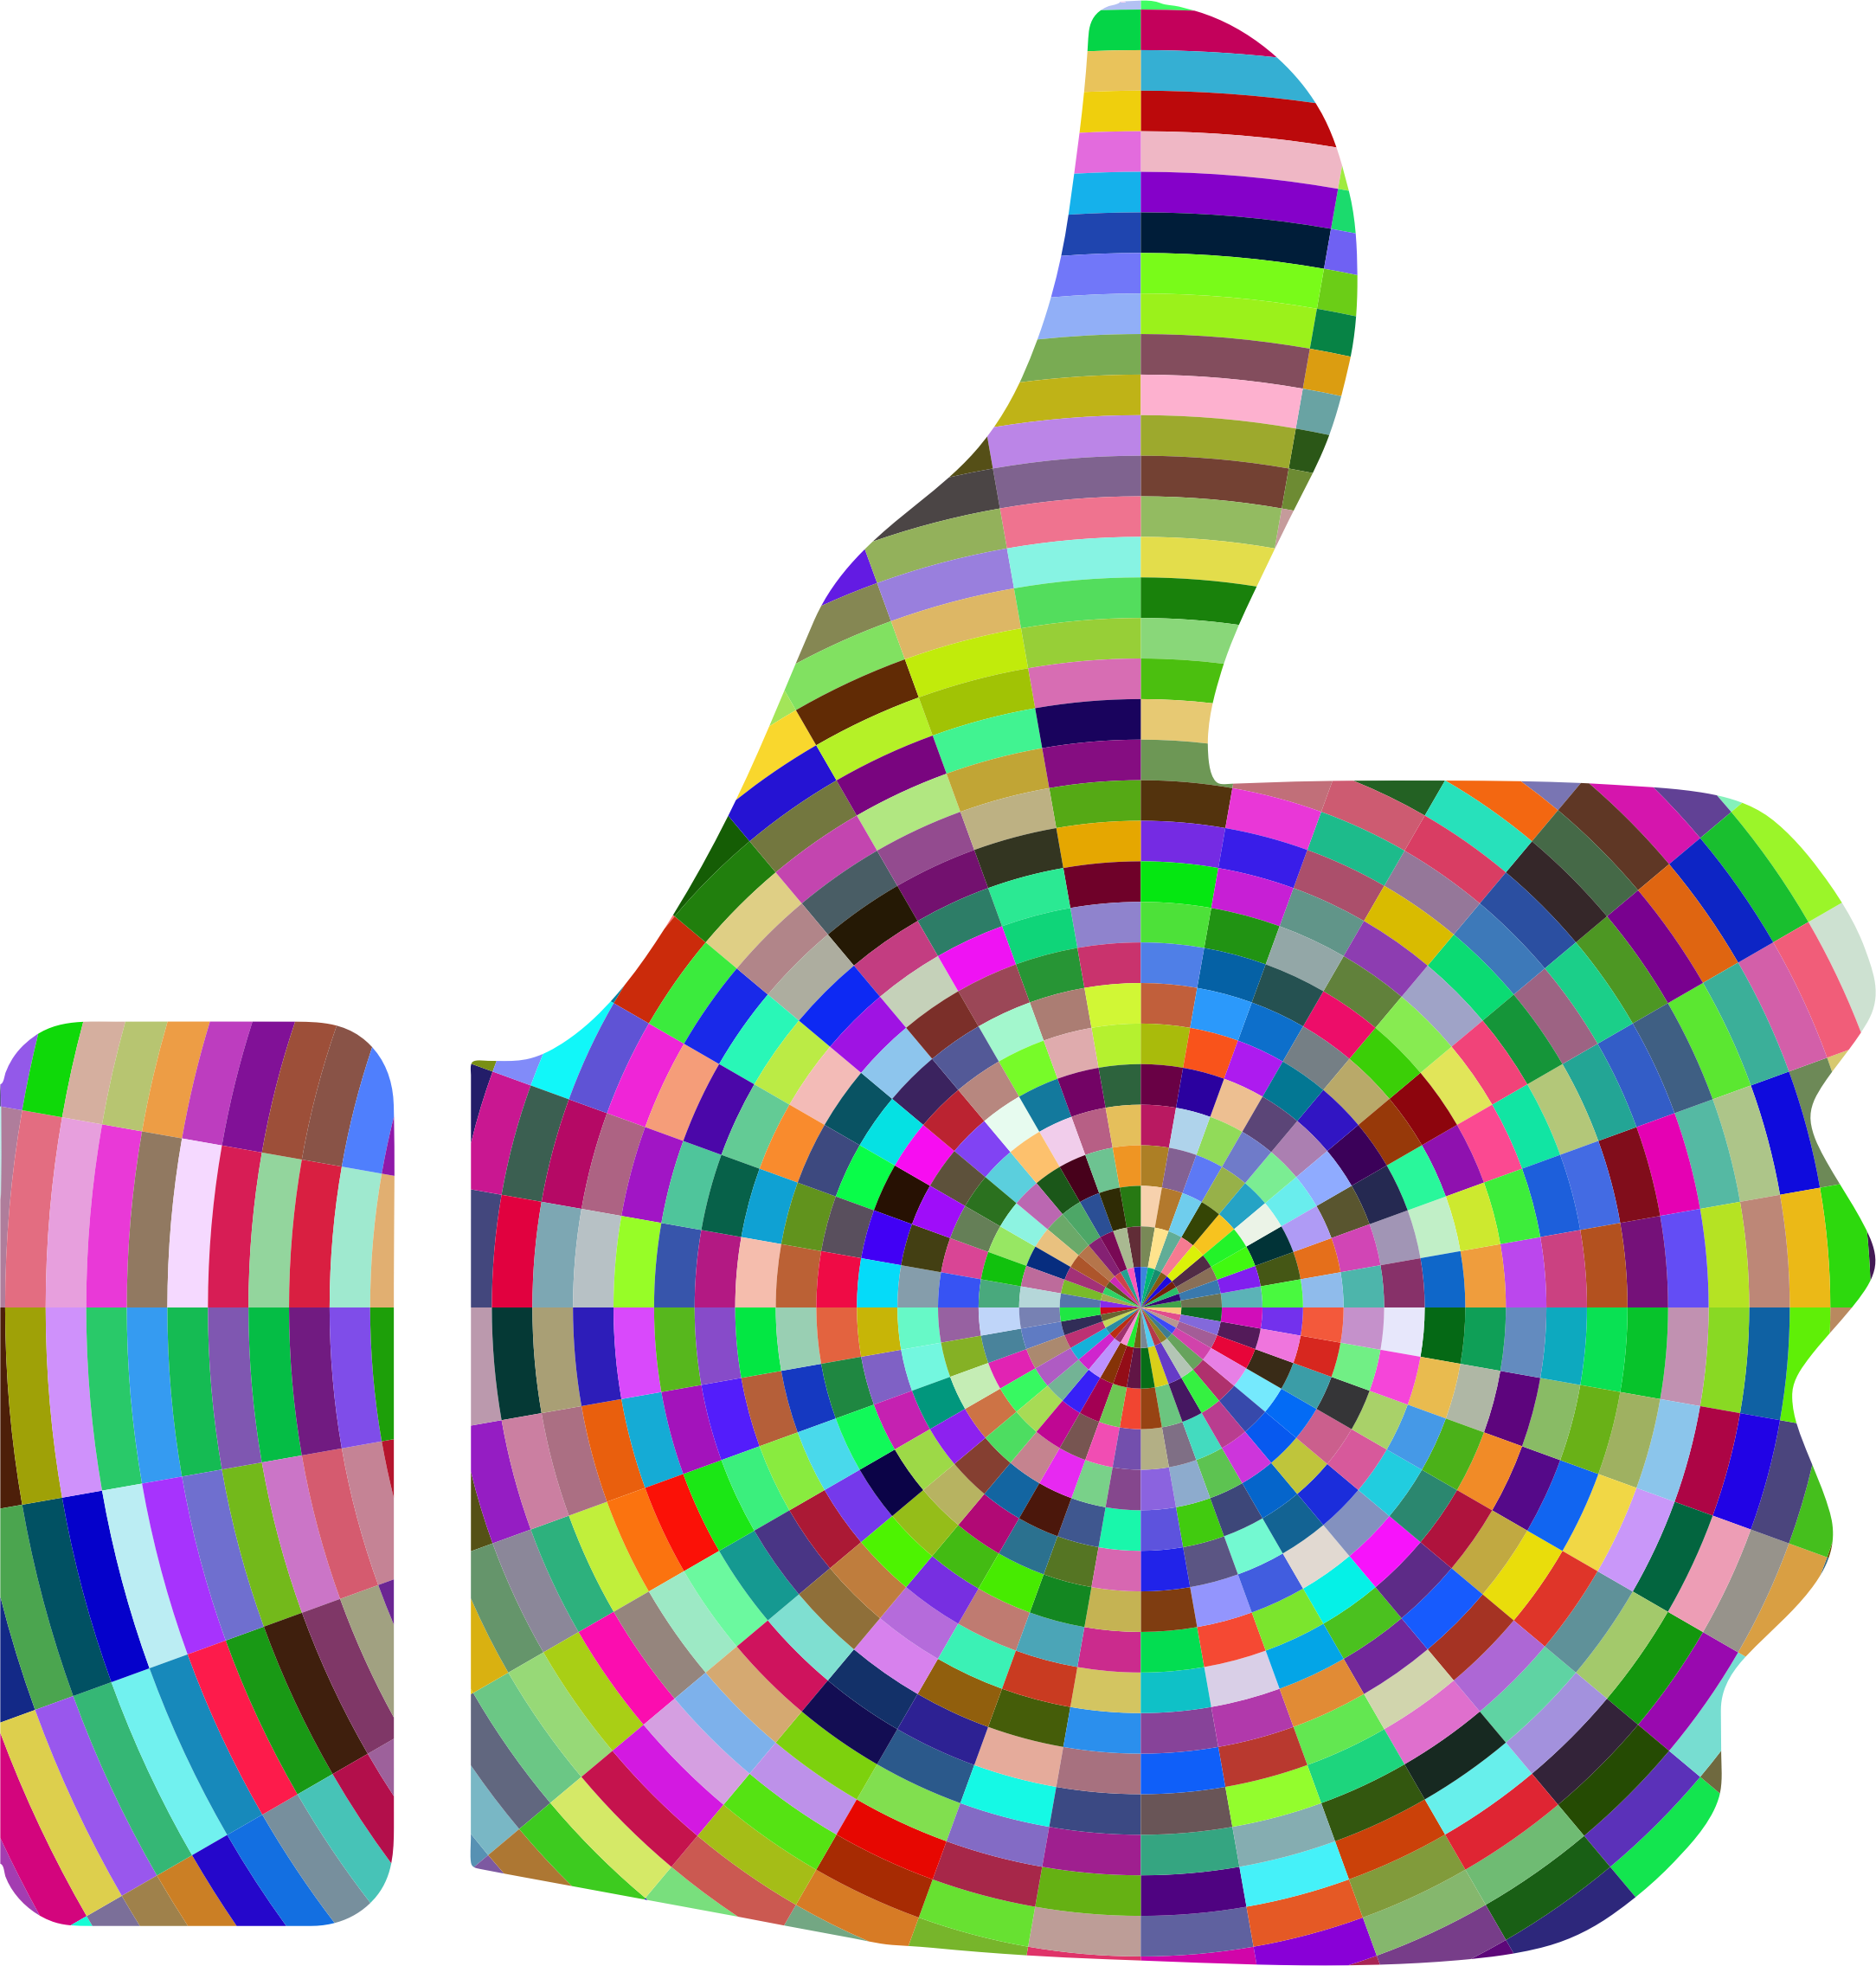 Prismatic Radial Thumbs Up by GDJ